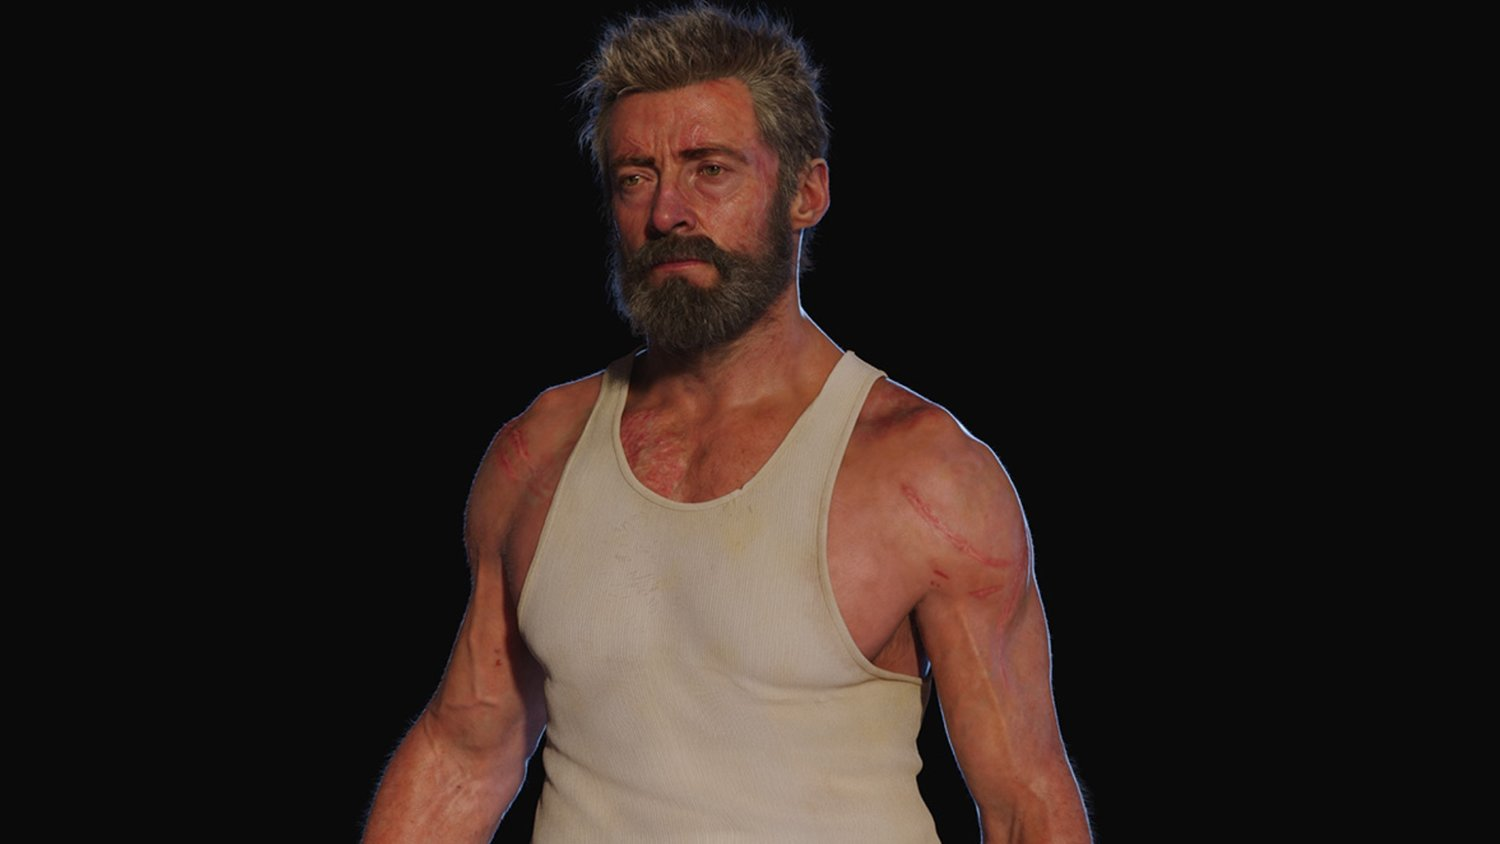 Hugh Jackman Had a CGI Double in LOGAN and You Would've Never Noticed